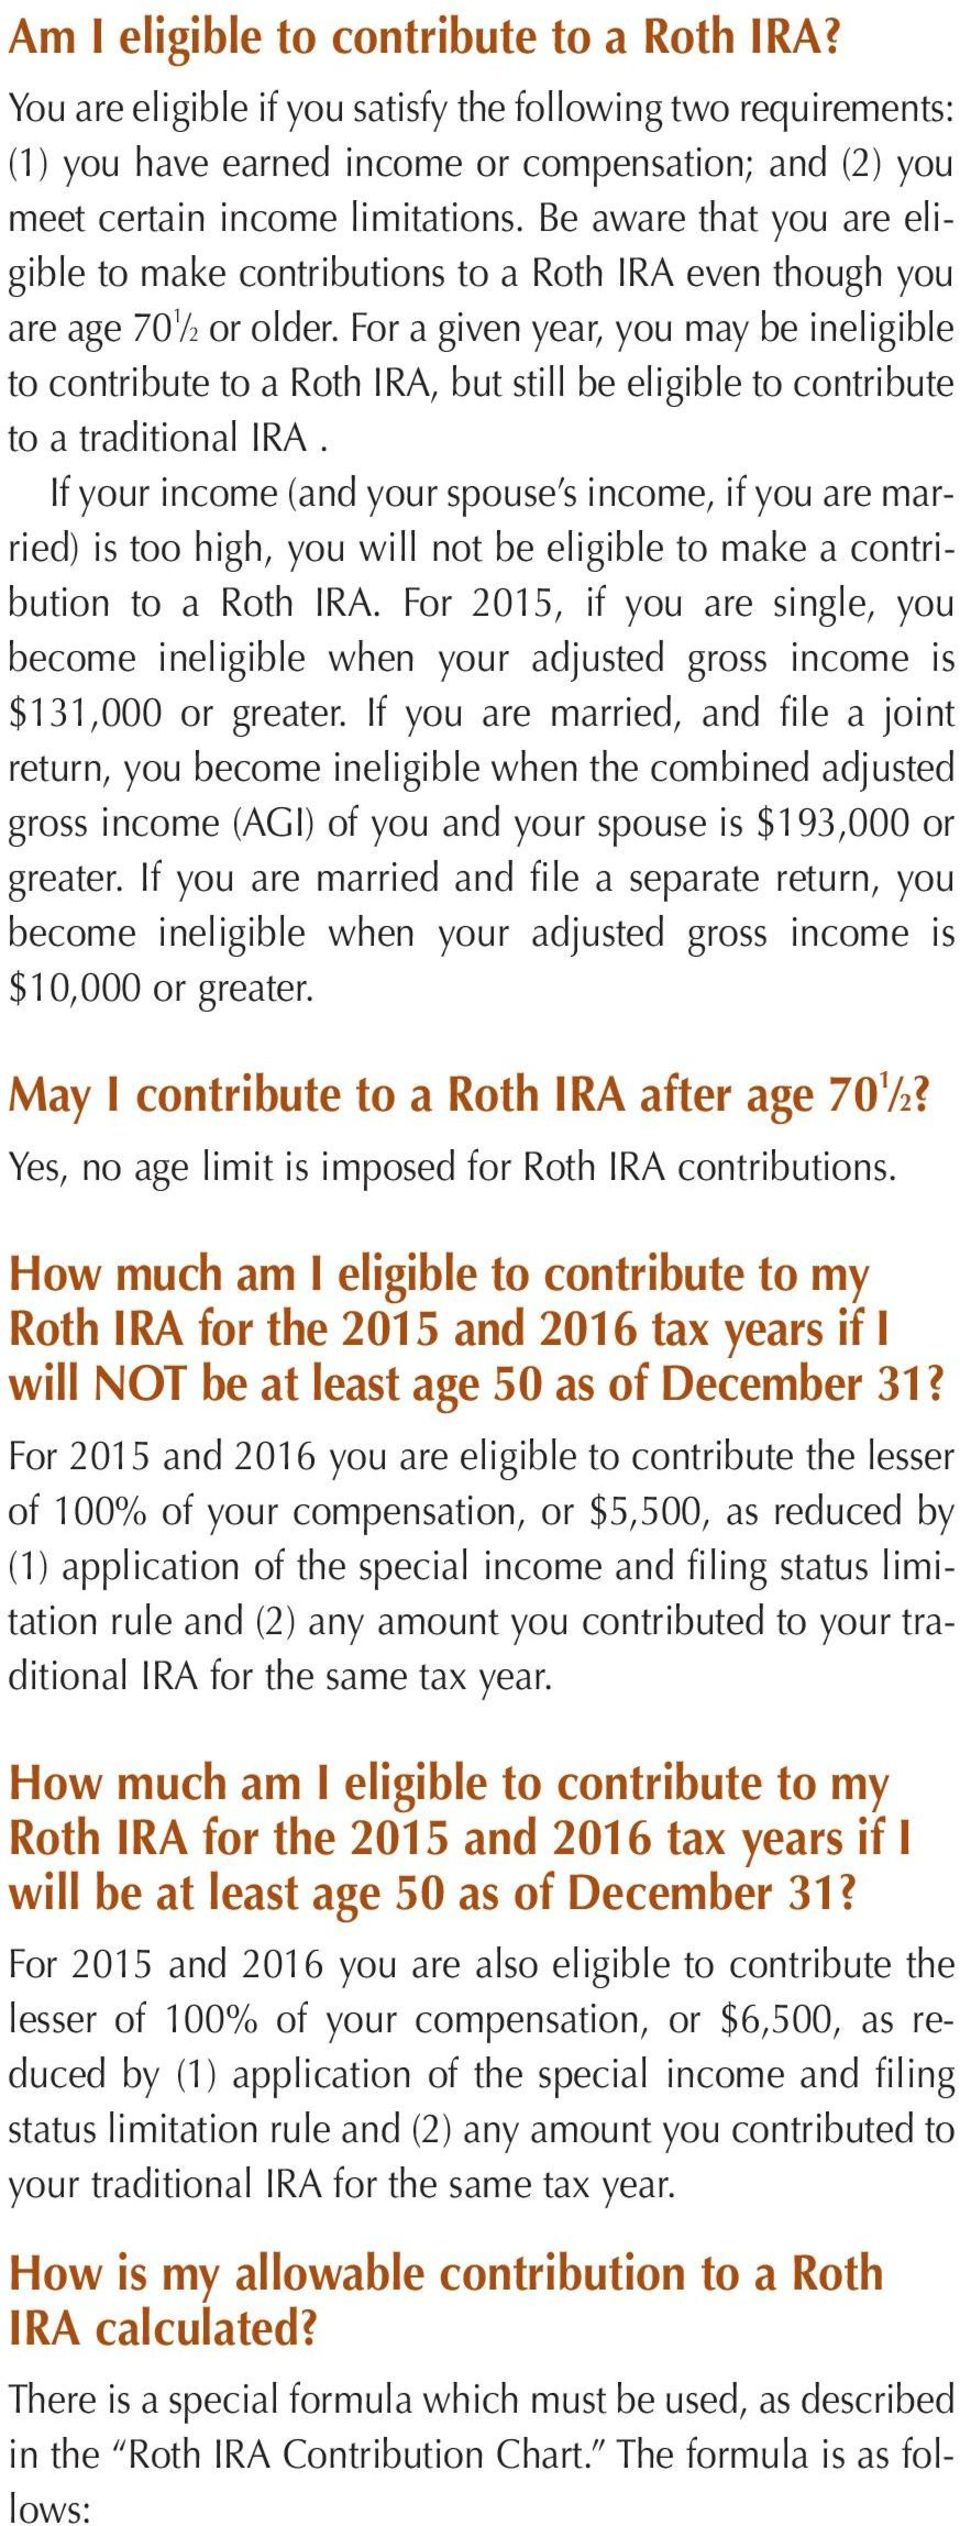 For a given year, you may be ineligible to contribute to a Roth IRA, but still be eligible to contribute to a traditional IRA.